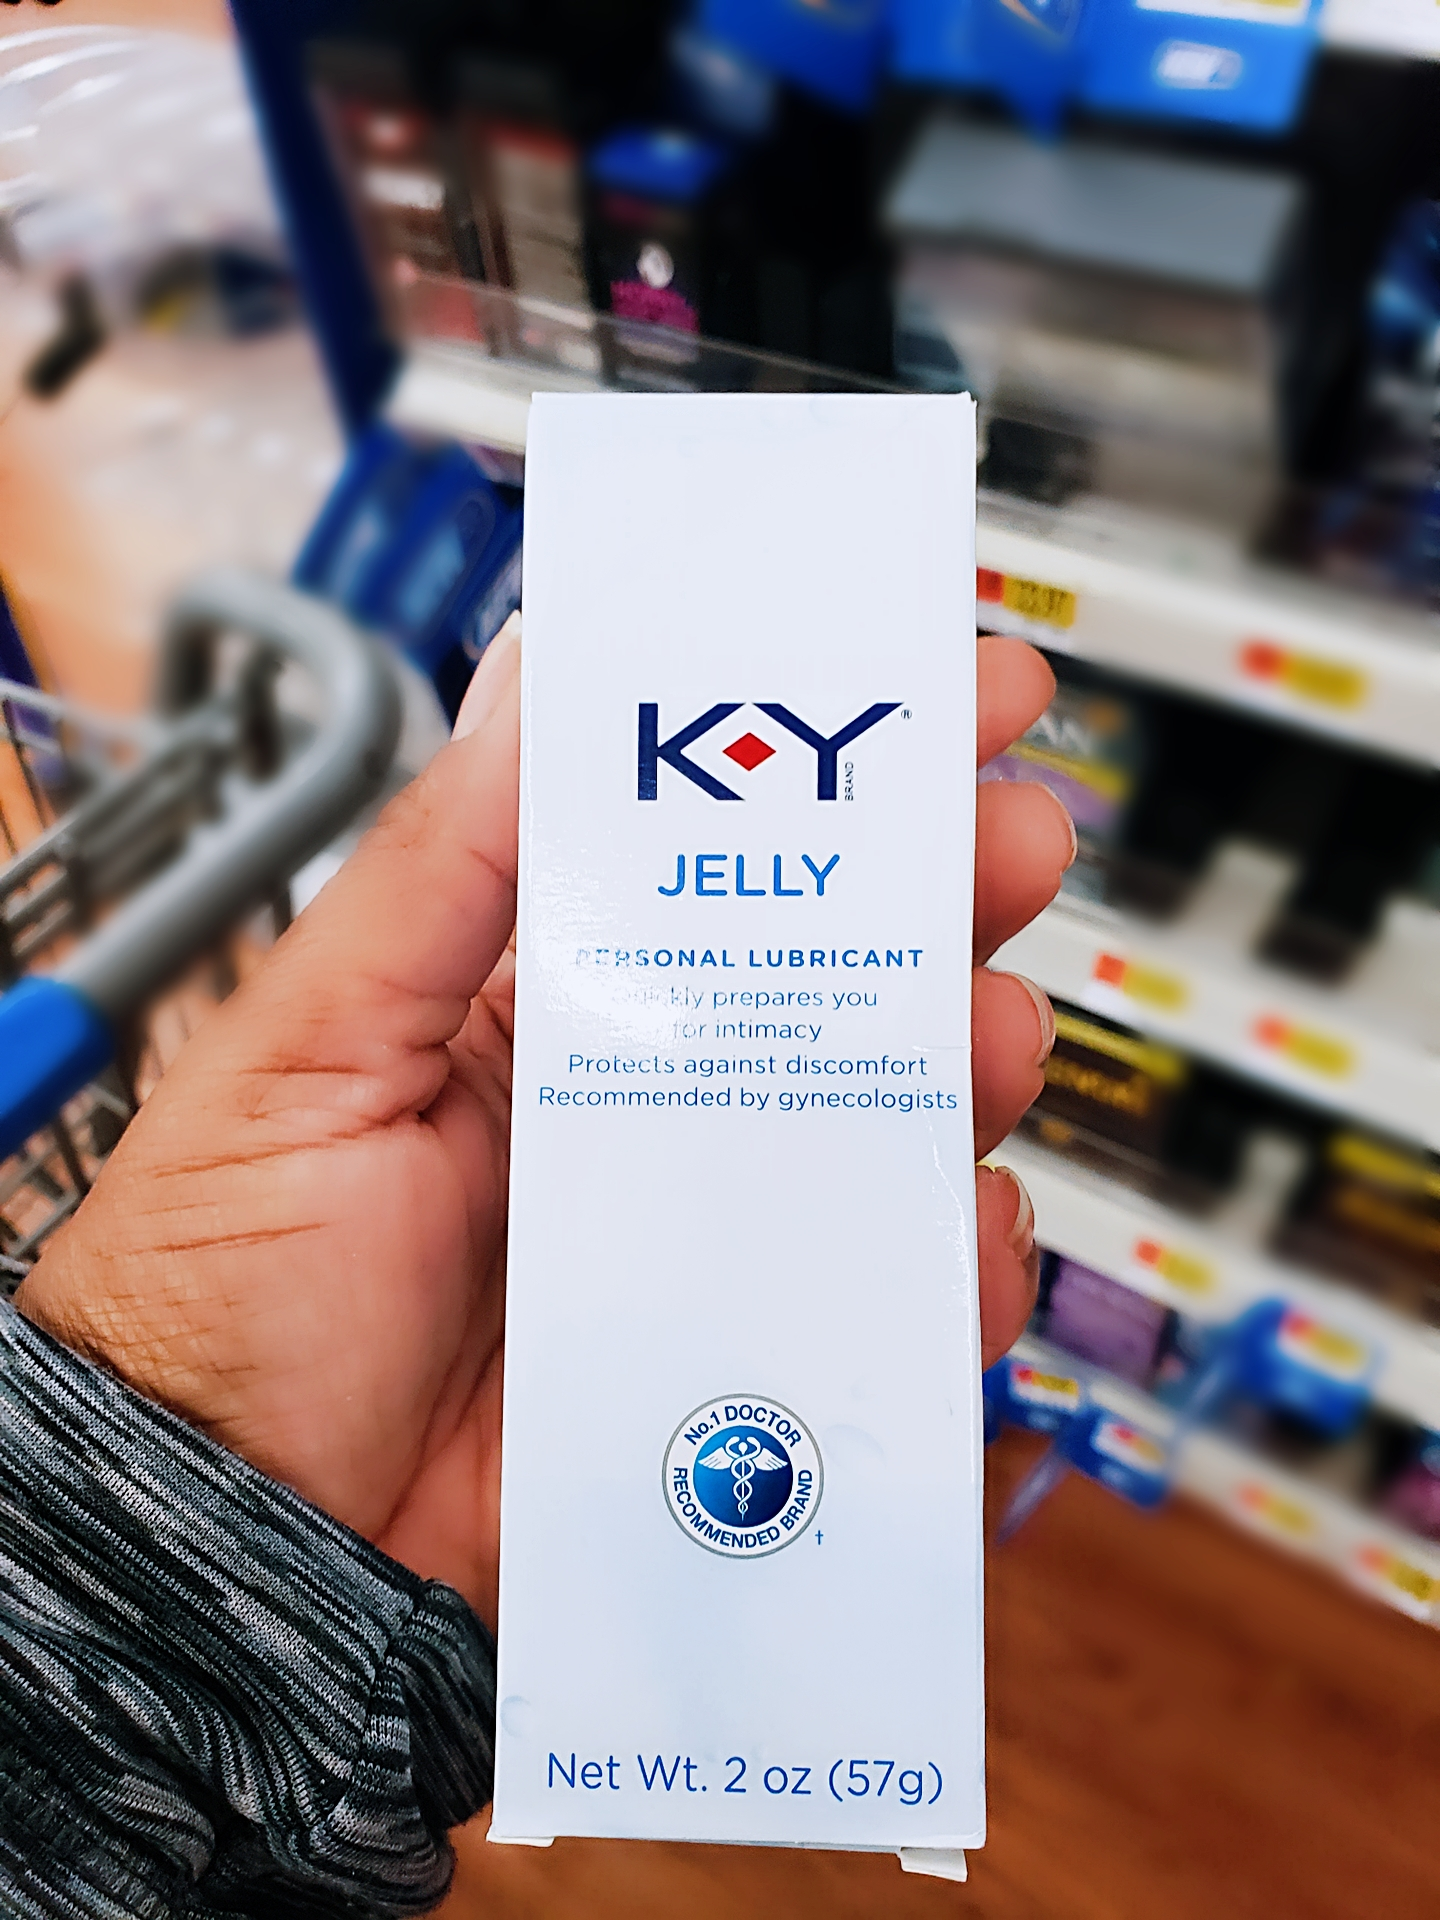 K-Y Jelly For Hair Moisture & Fighting Frizz. Yes, This Is Real!